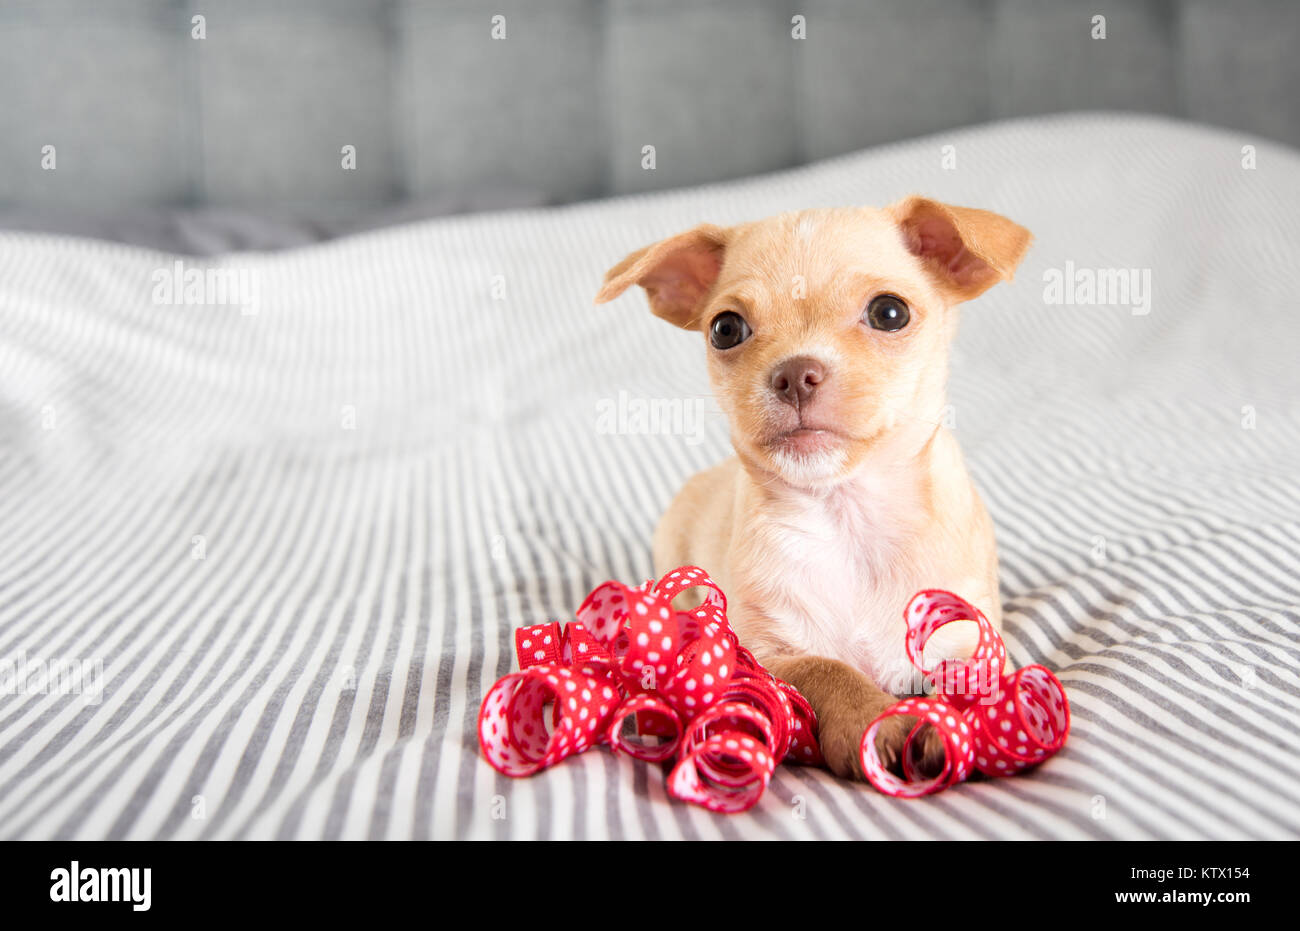 Tiny Chihuahua Puppy Playing With Red Ribbo Stock Photo Alamy